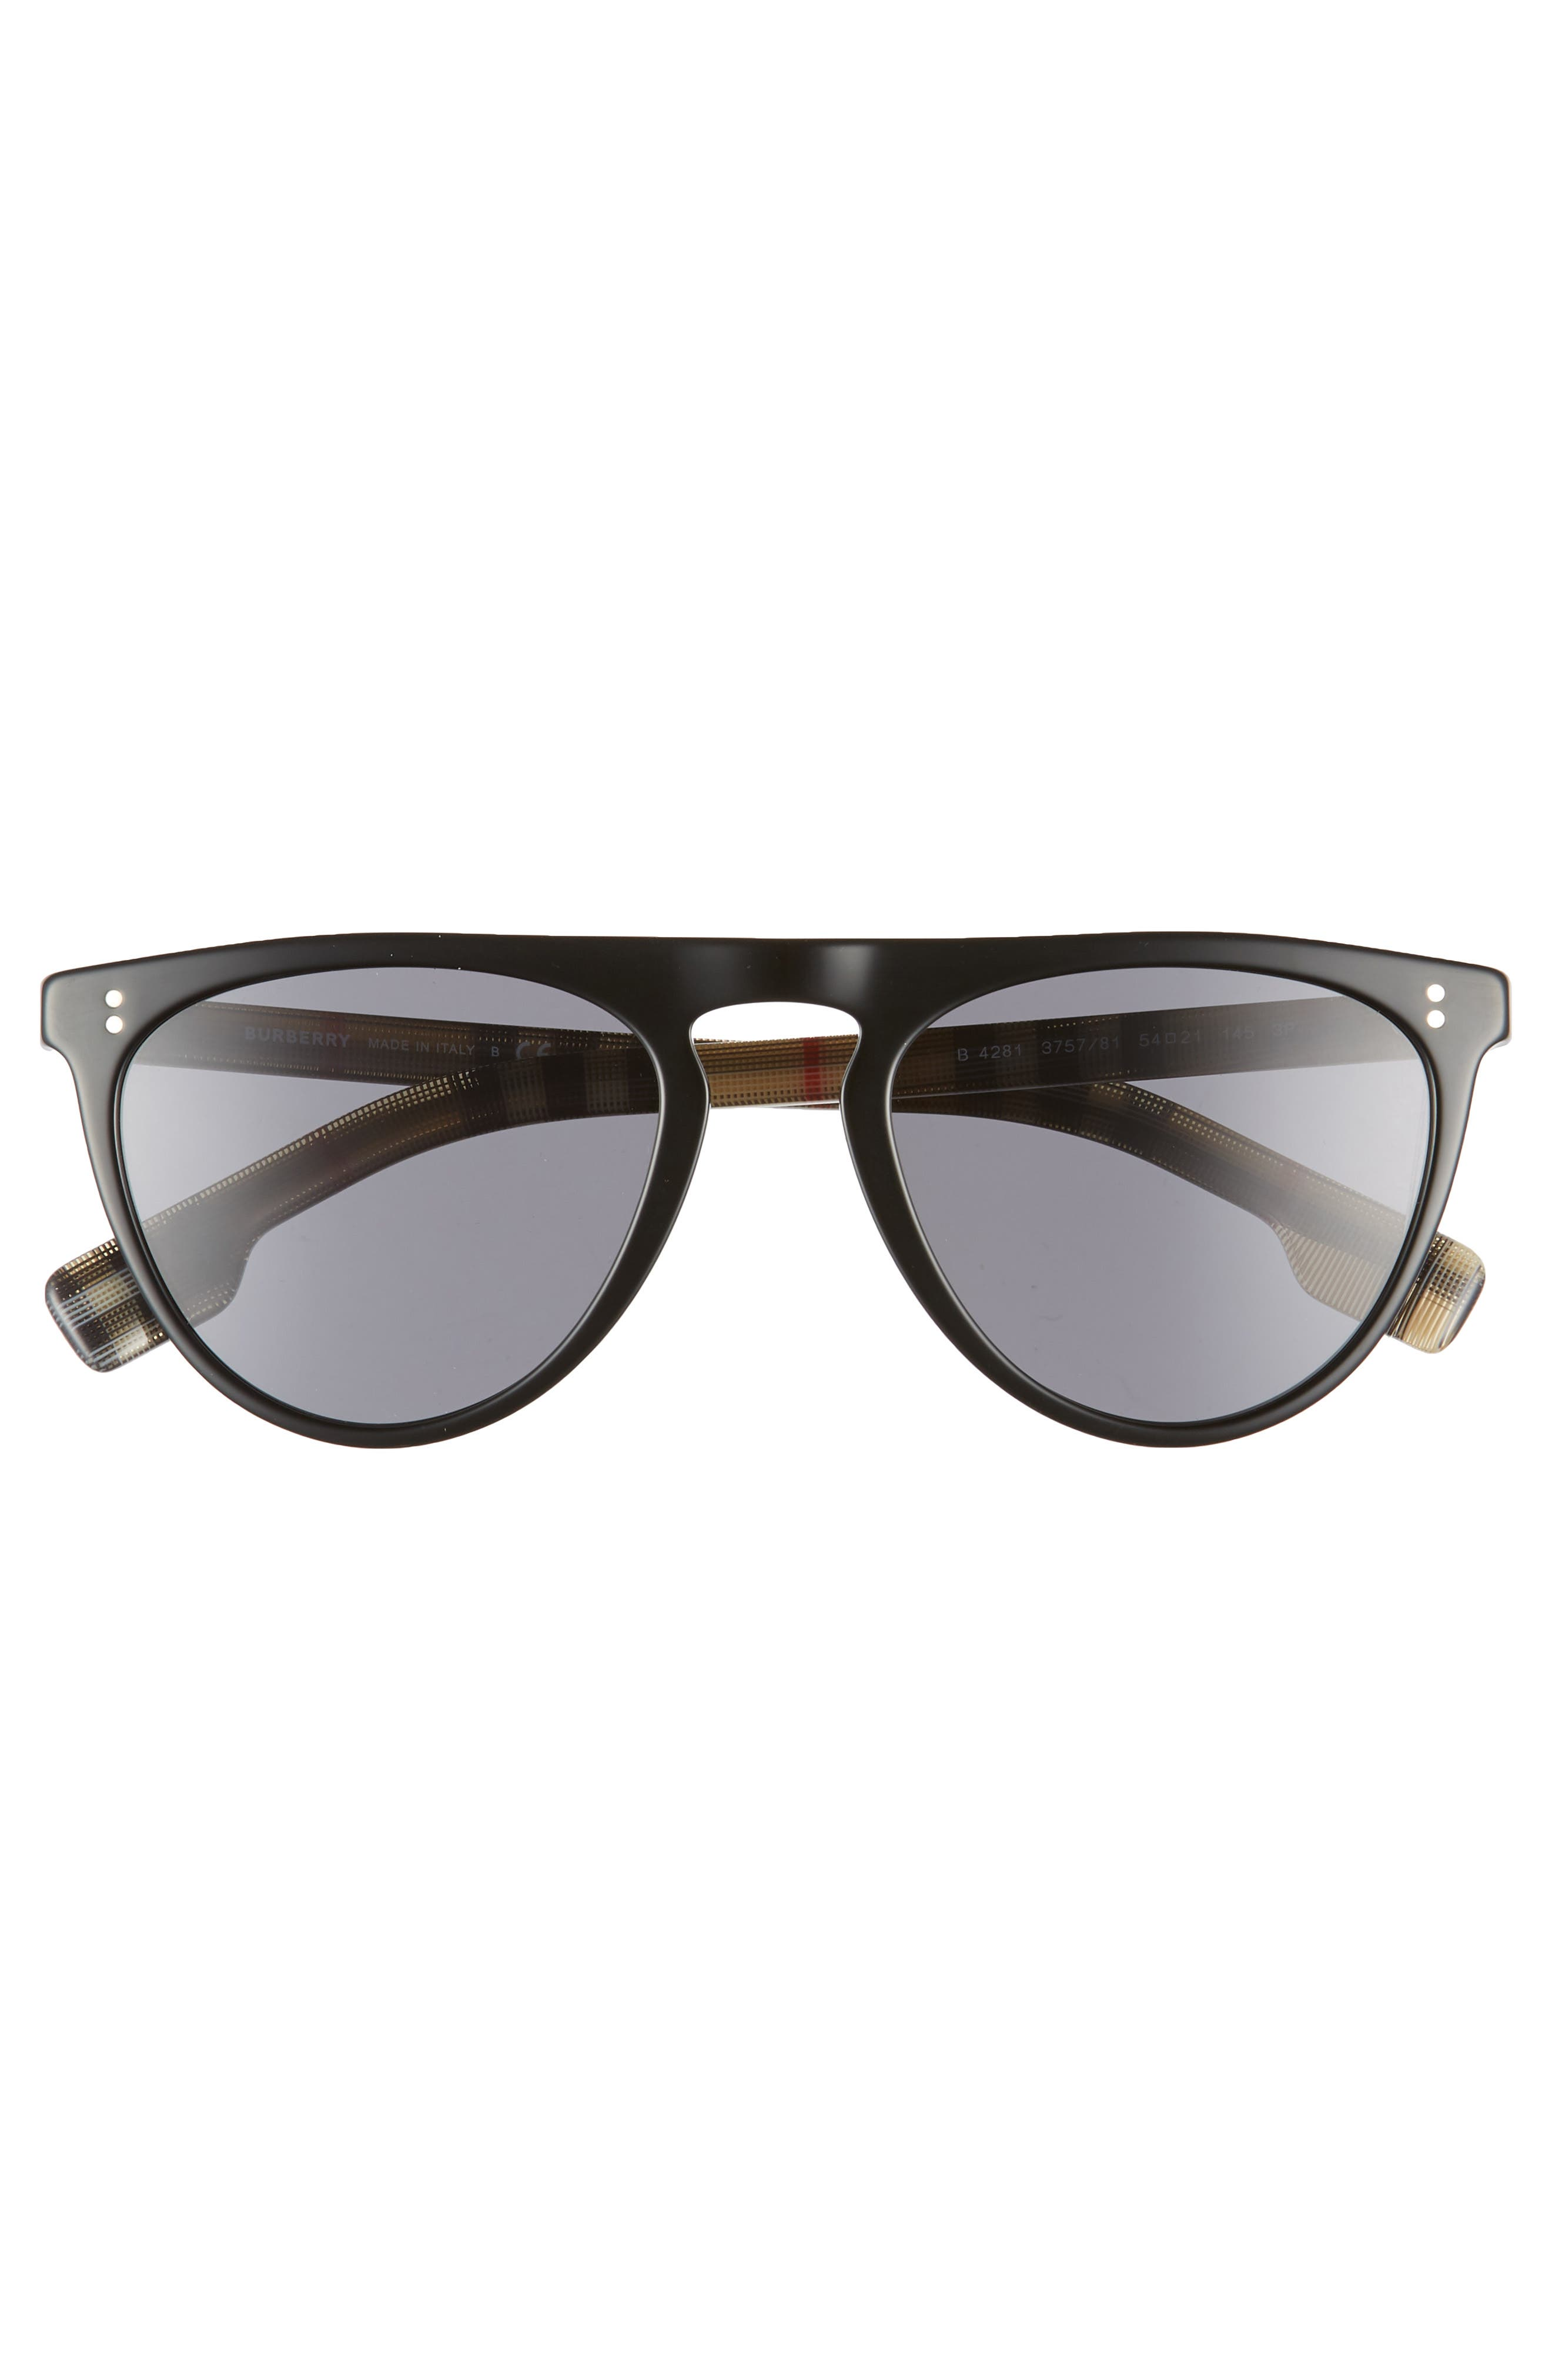 54mm Polarized Sunglasses,                             Alternate thumbnail 3, color,                             BLACK PATTERN SOLID